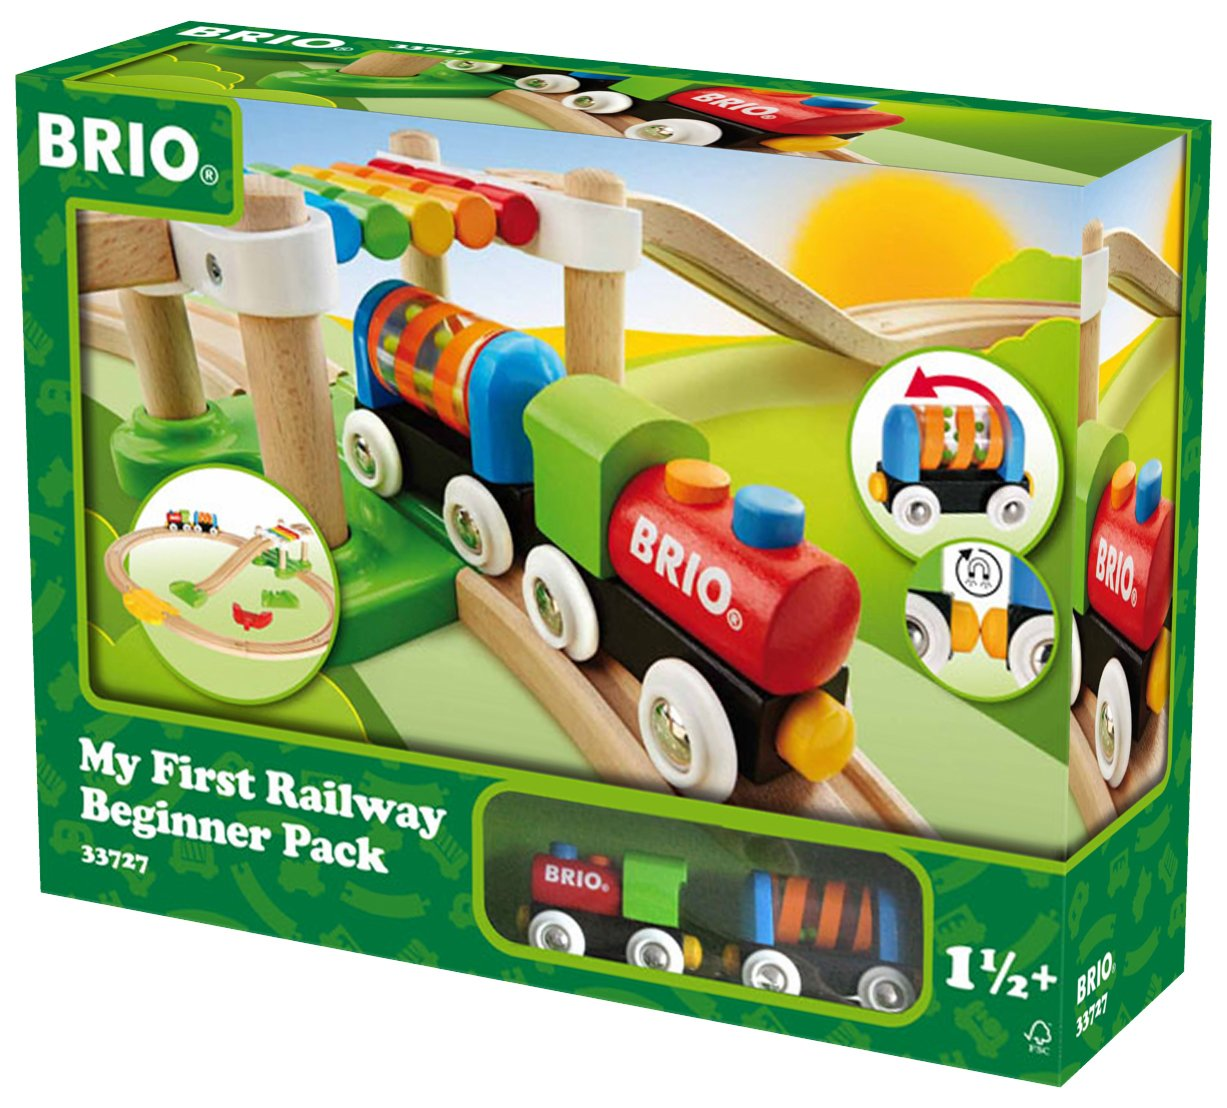 Brio My First Railway Beginner Pack Wooden Toy Train Set Made with European Beech Wood and Works with All Wooden Railway Sets